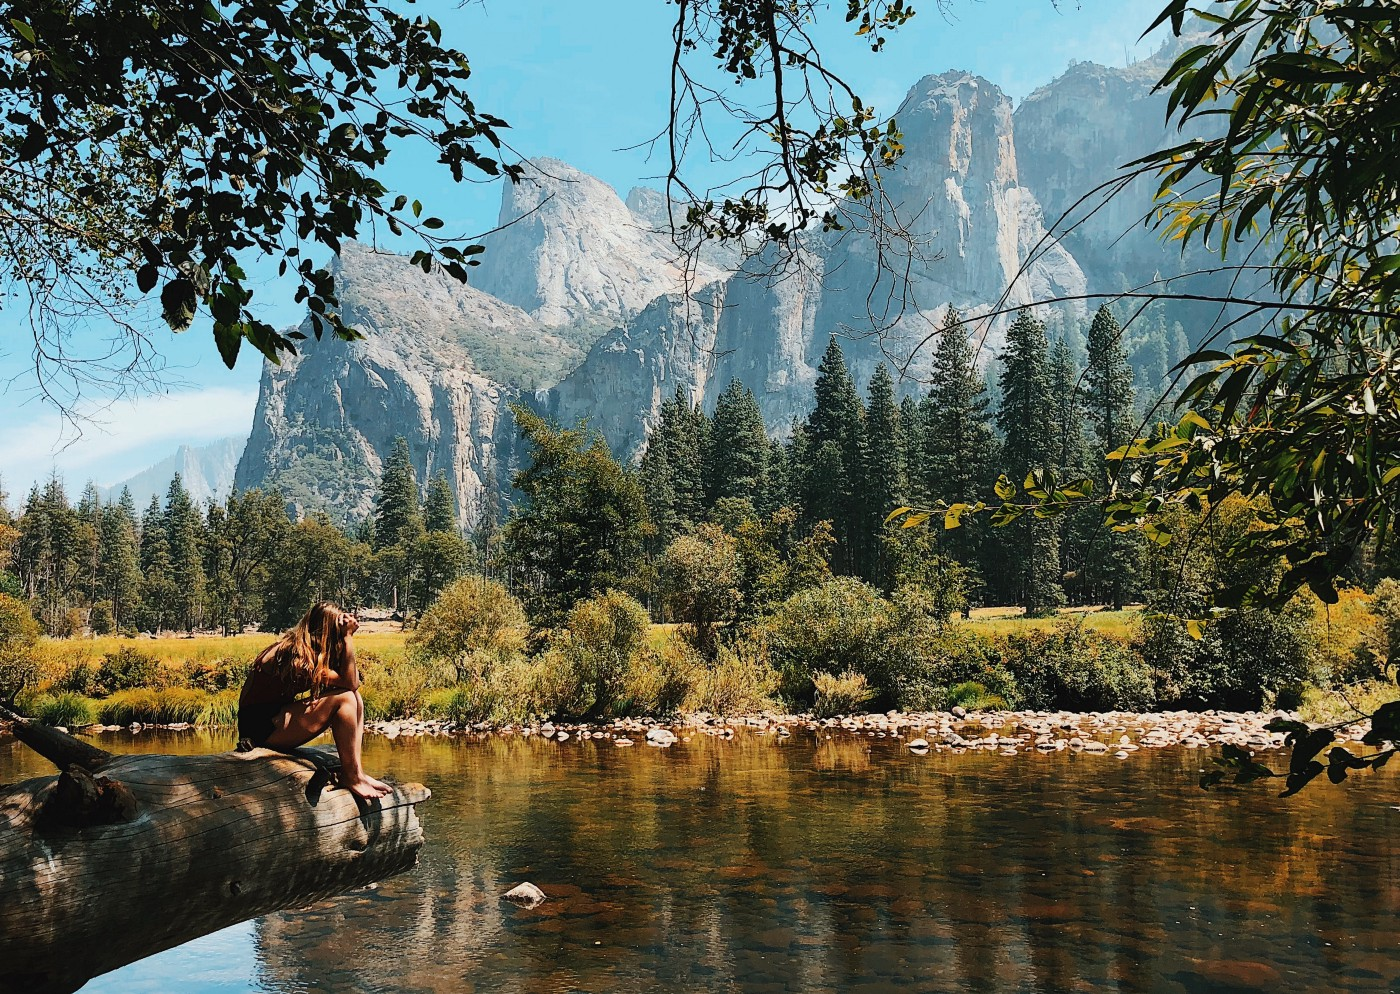 Woman sitting on a tree trunk by the lake in front of picturesque mountains.